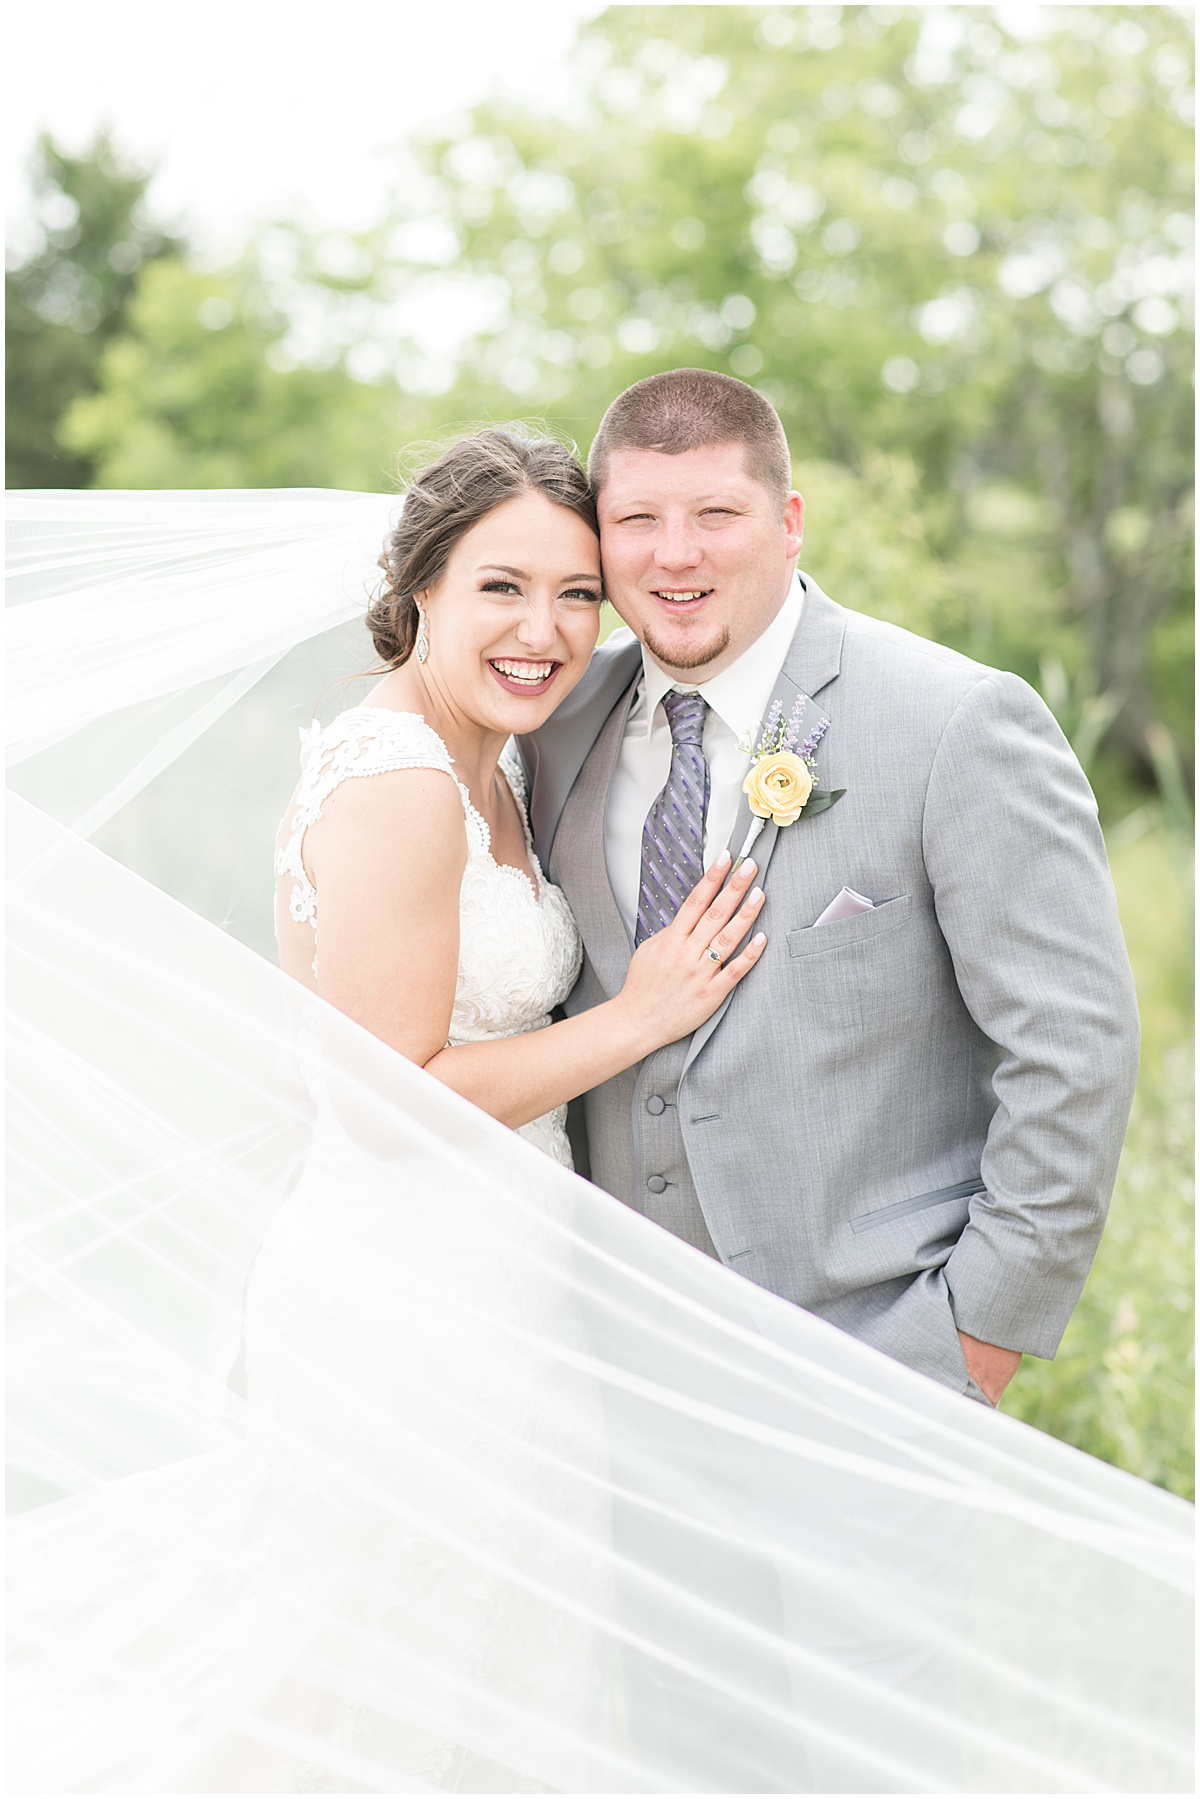 Bride and groom portraits after wedding at Hunny Creek Haven in Waldron, Indiana